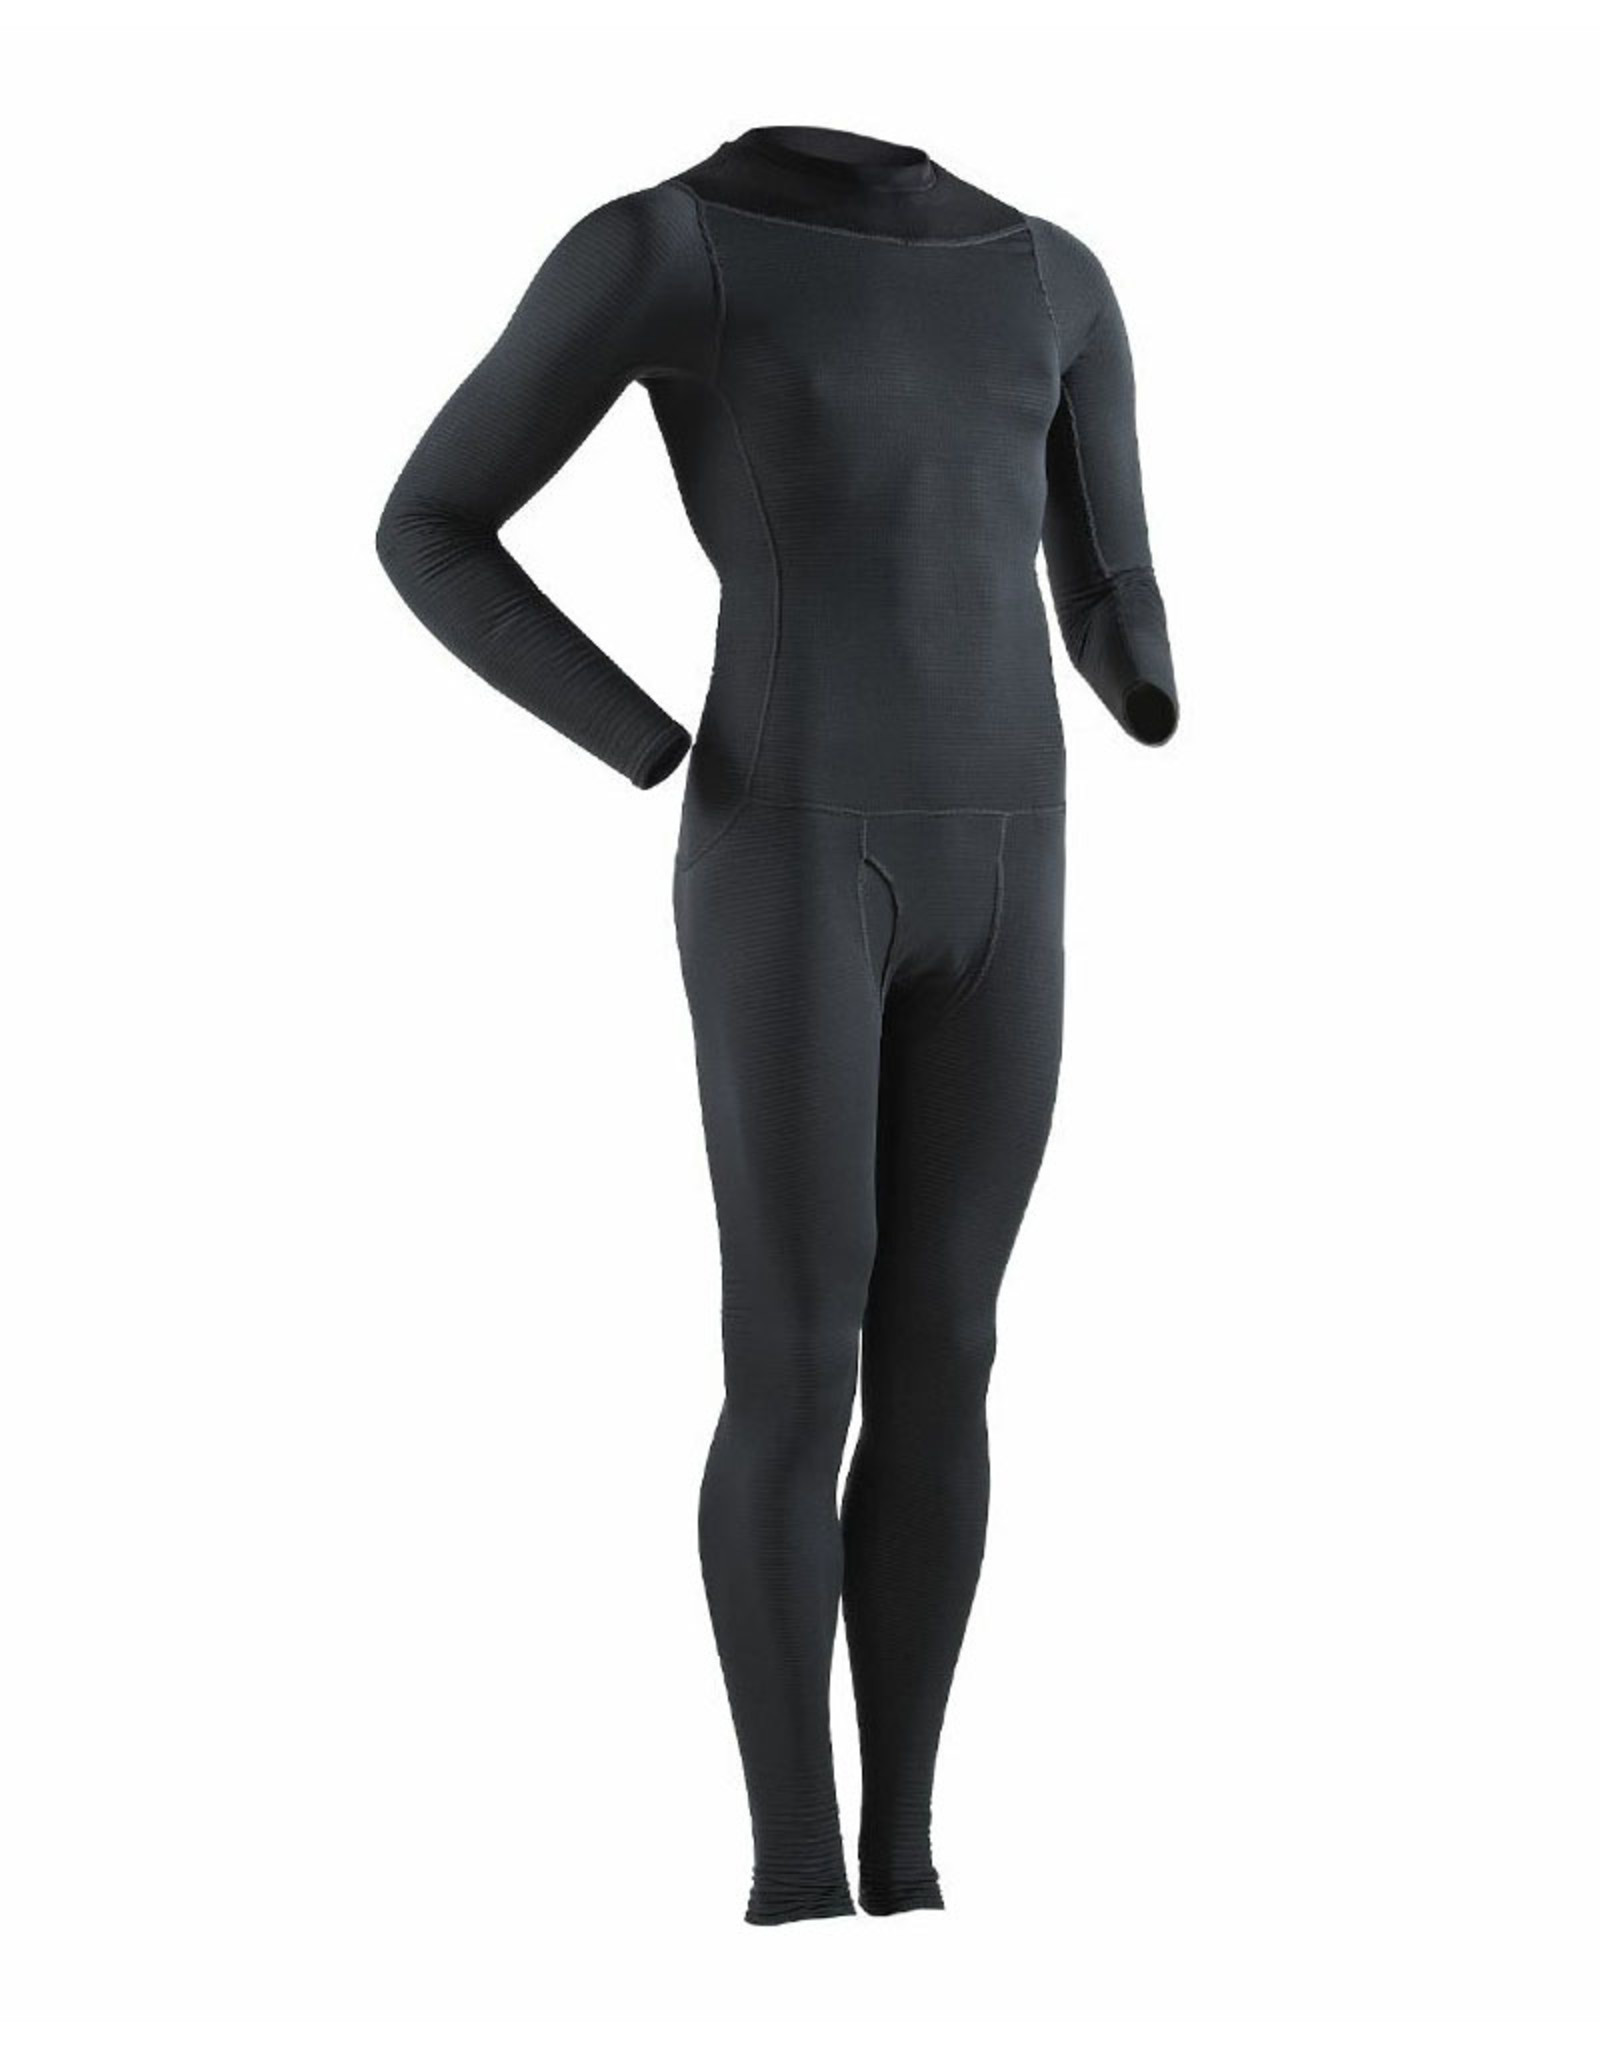 Immersion Research IR K2 Union Suit